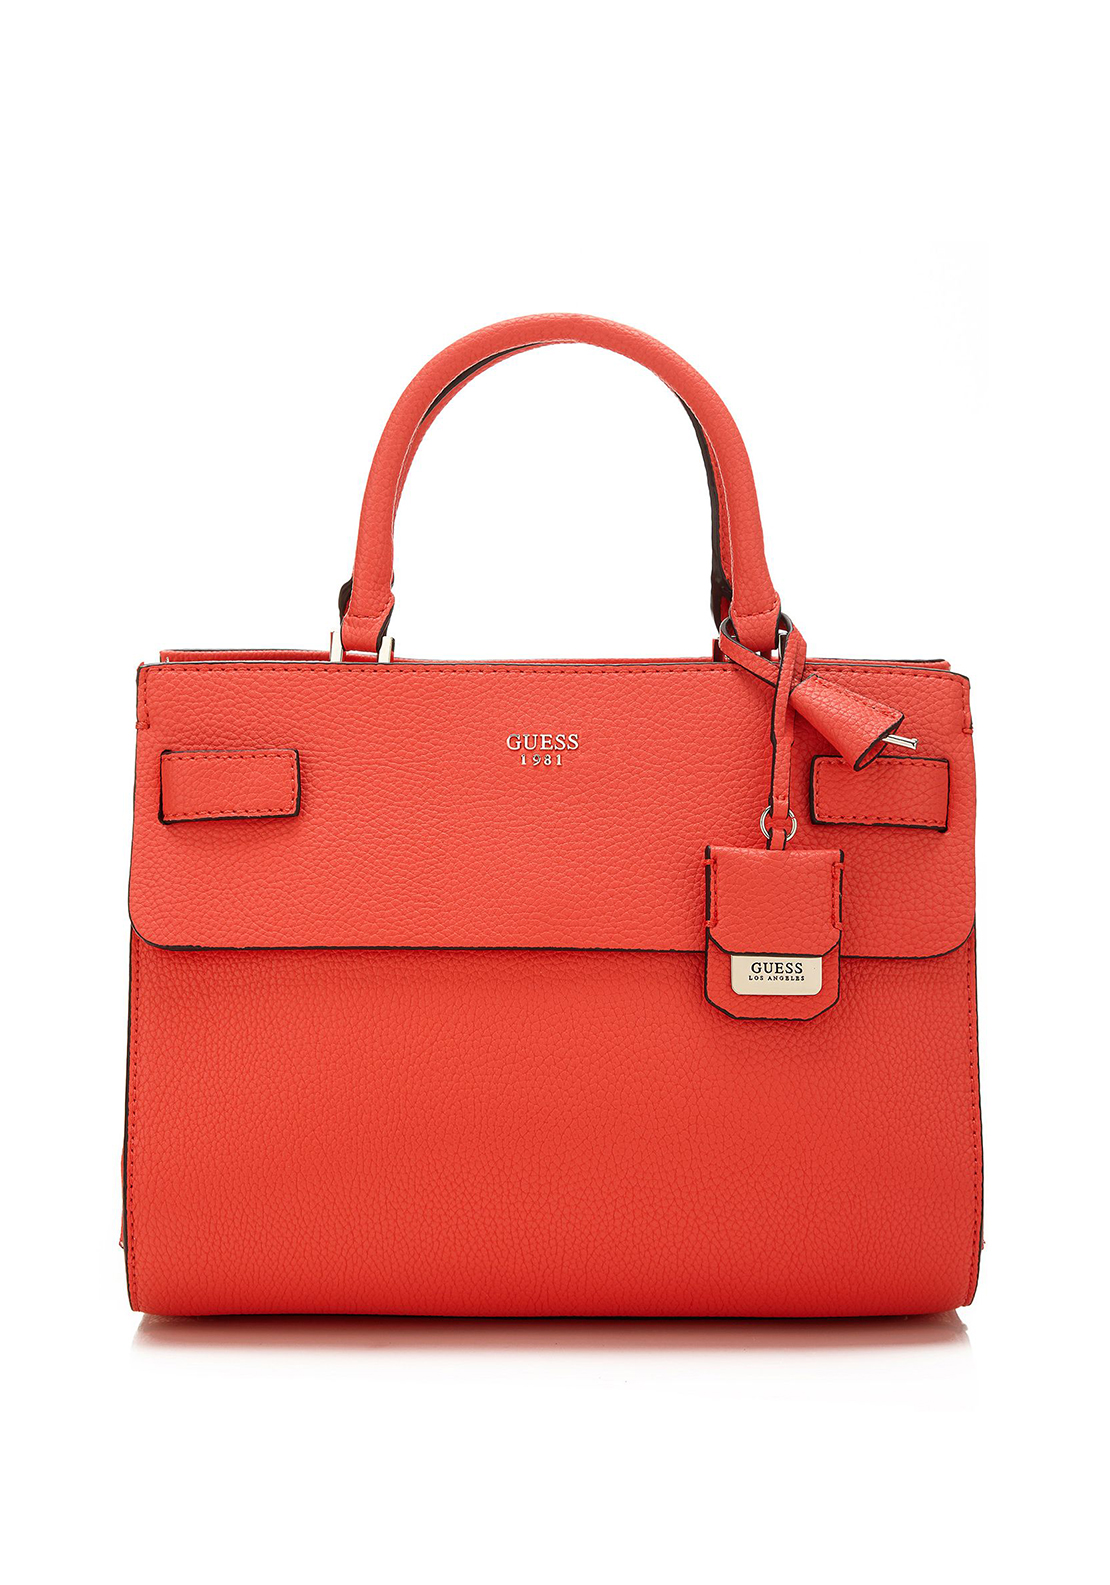 Guess Cate Tote Bag, Tomato Red